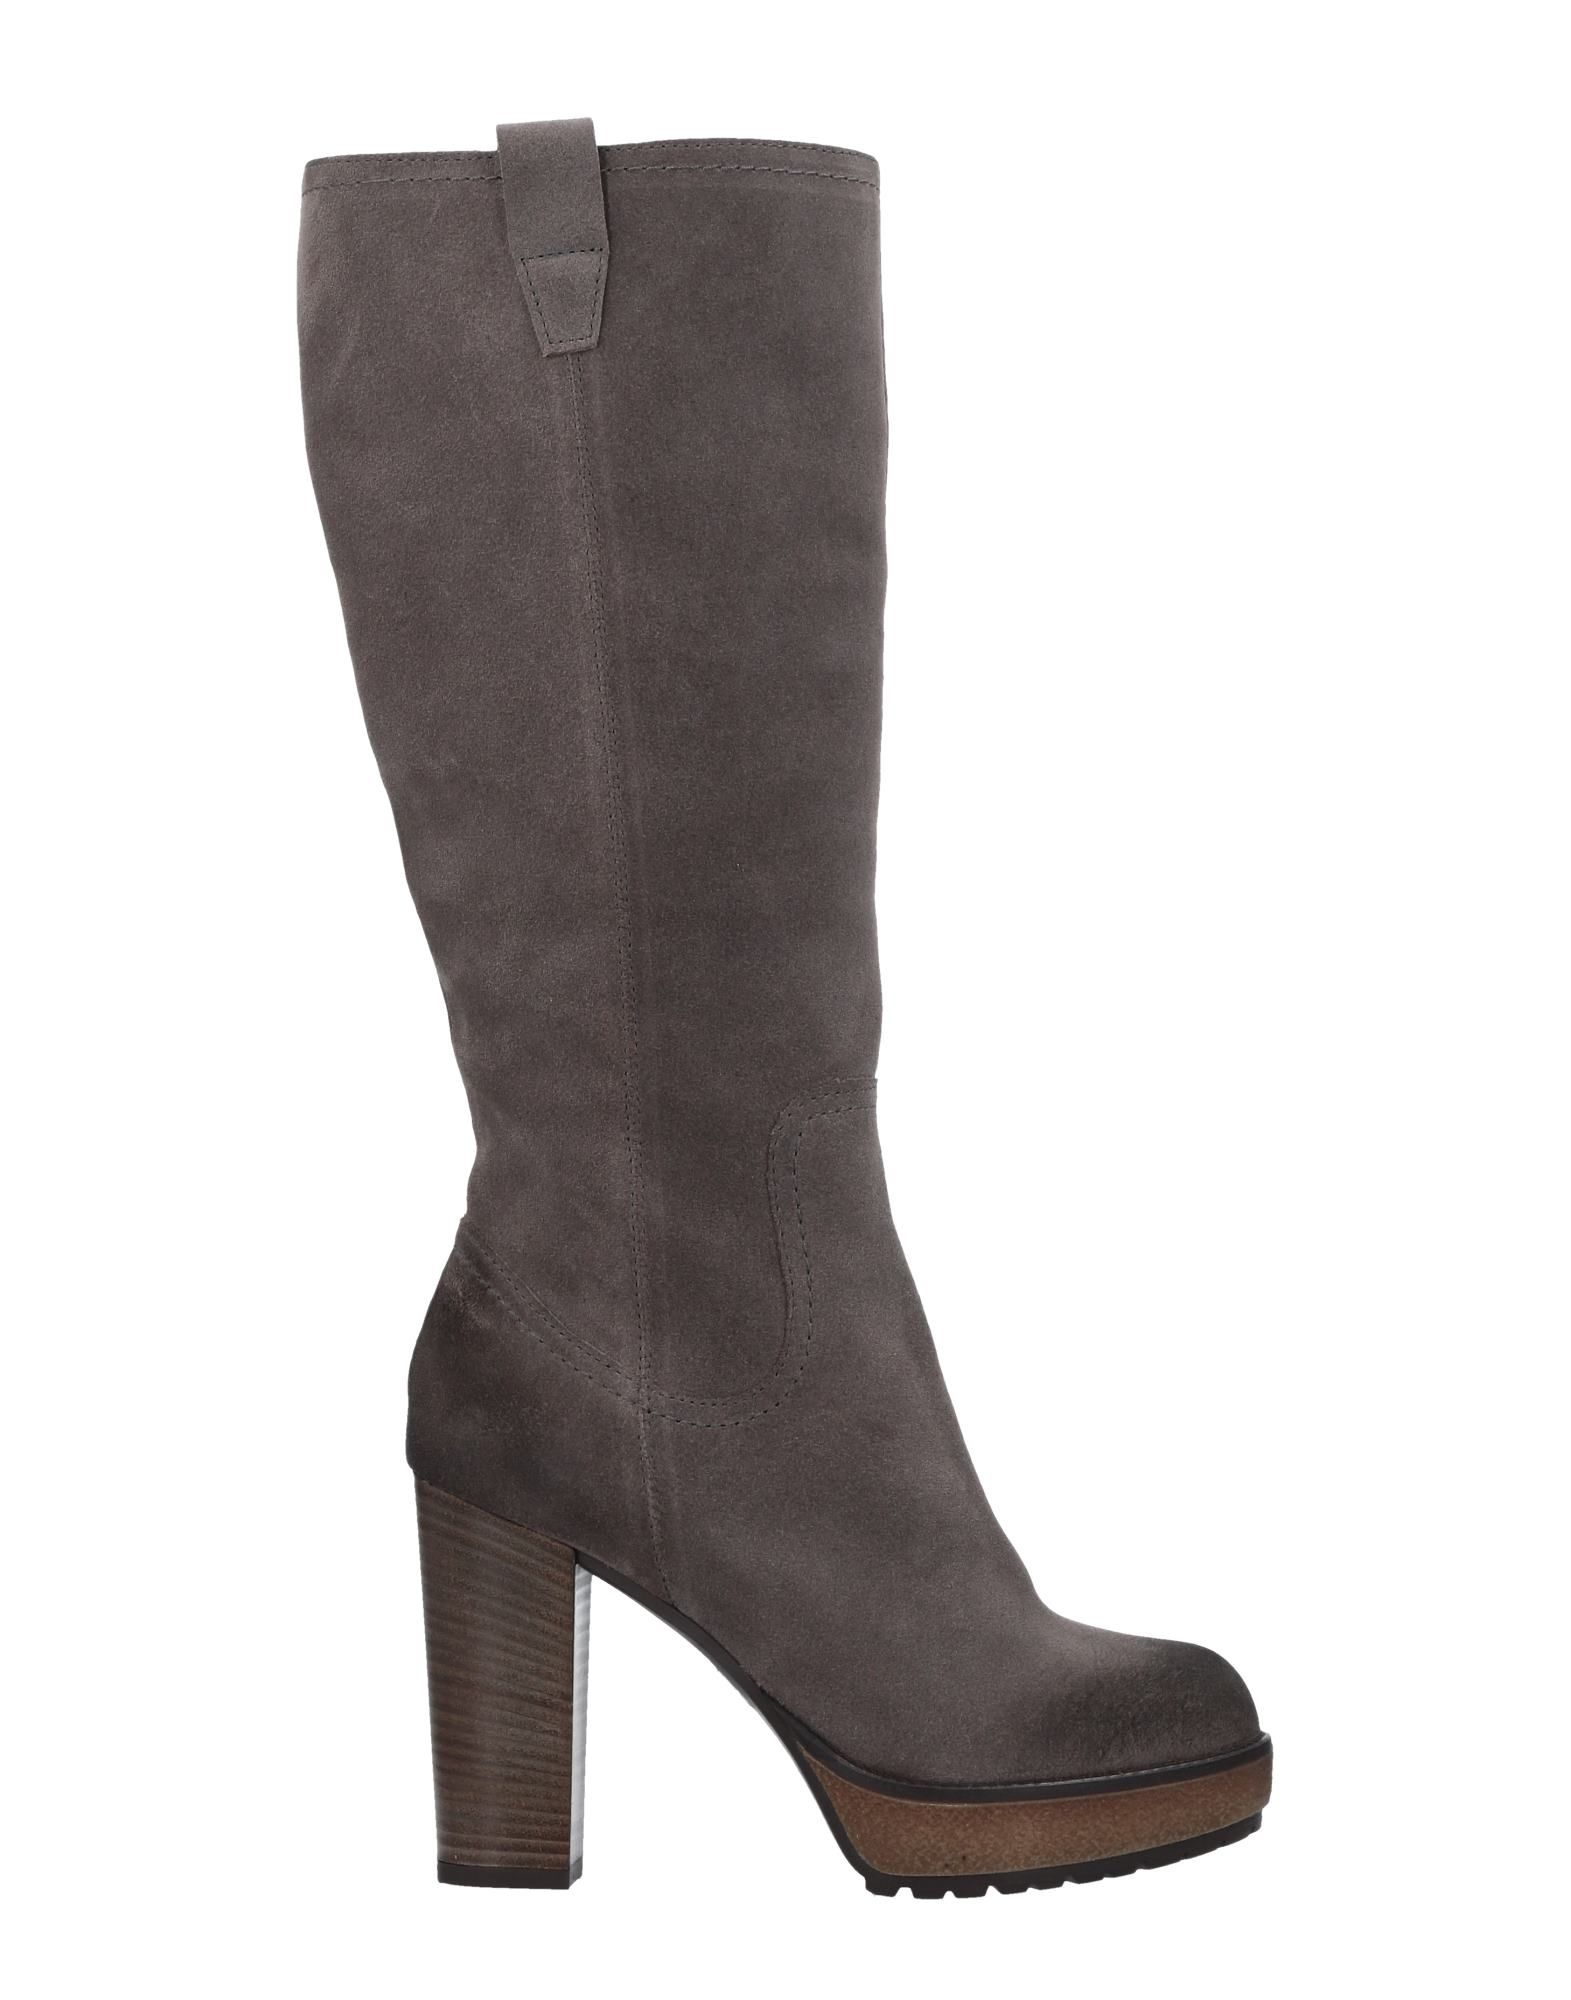 Manas  Boots - Women Manas Boots online on  Manas United Kingdom - 11512863BE 77cc67